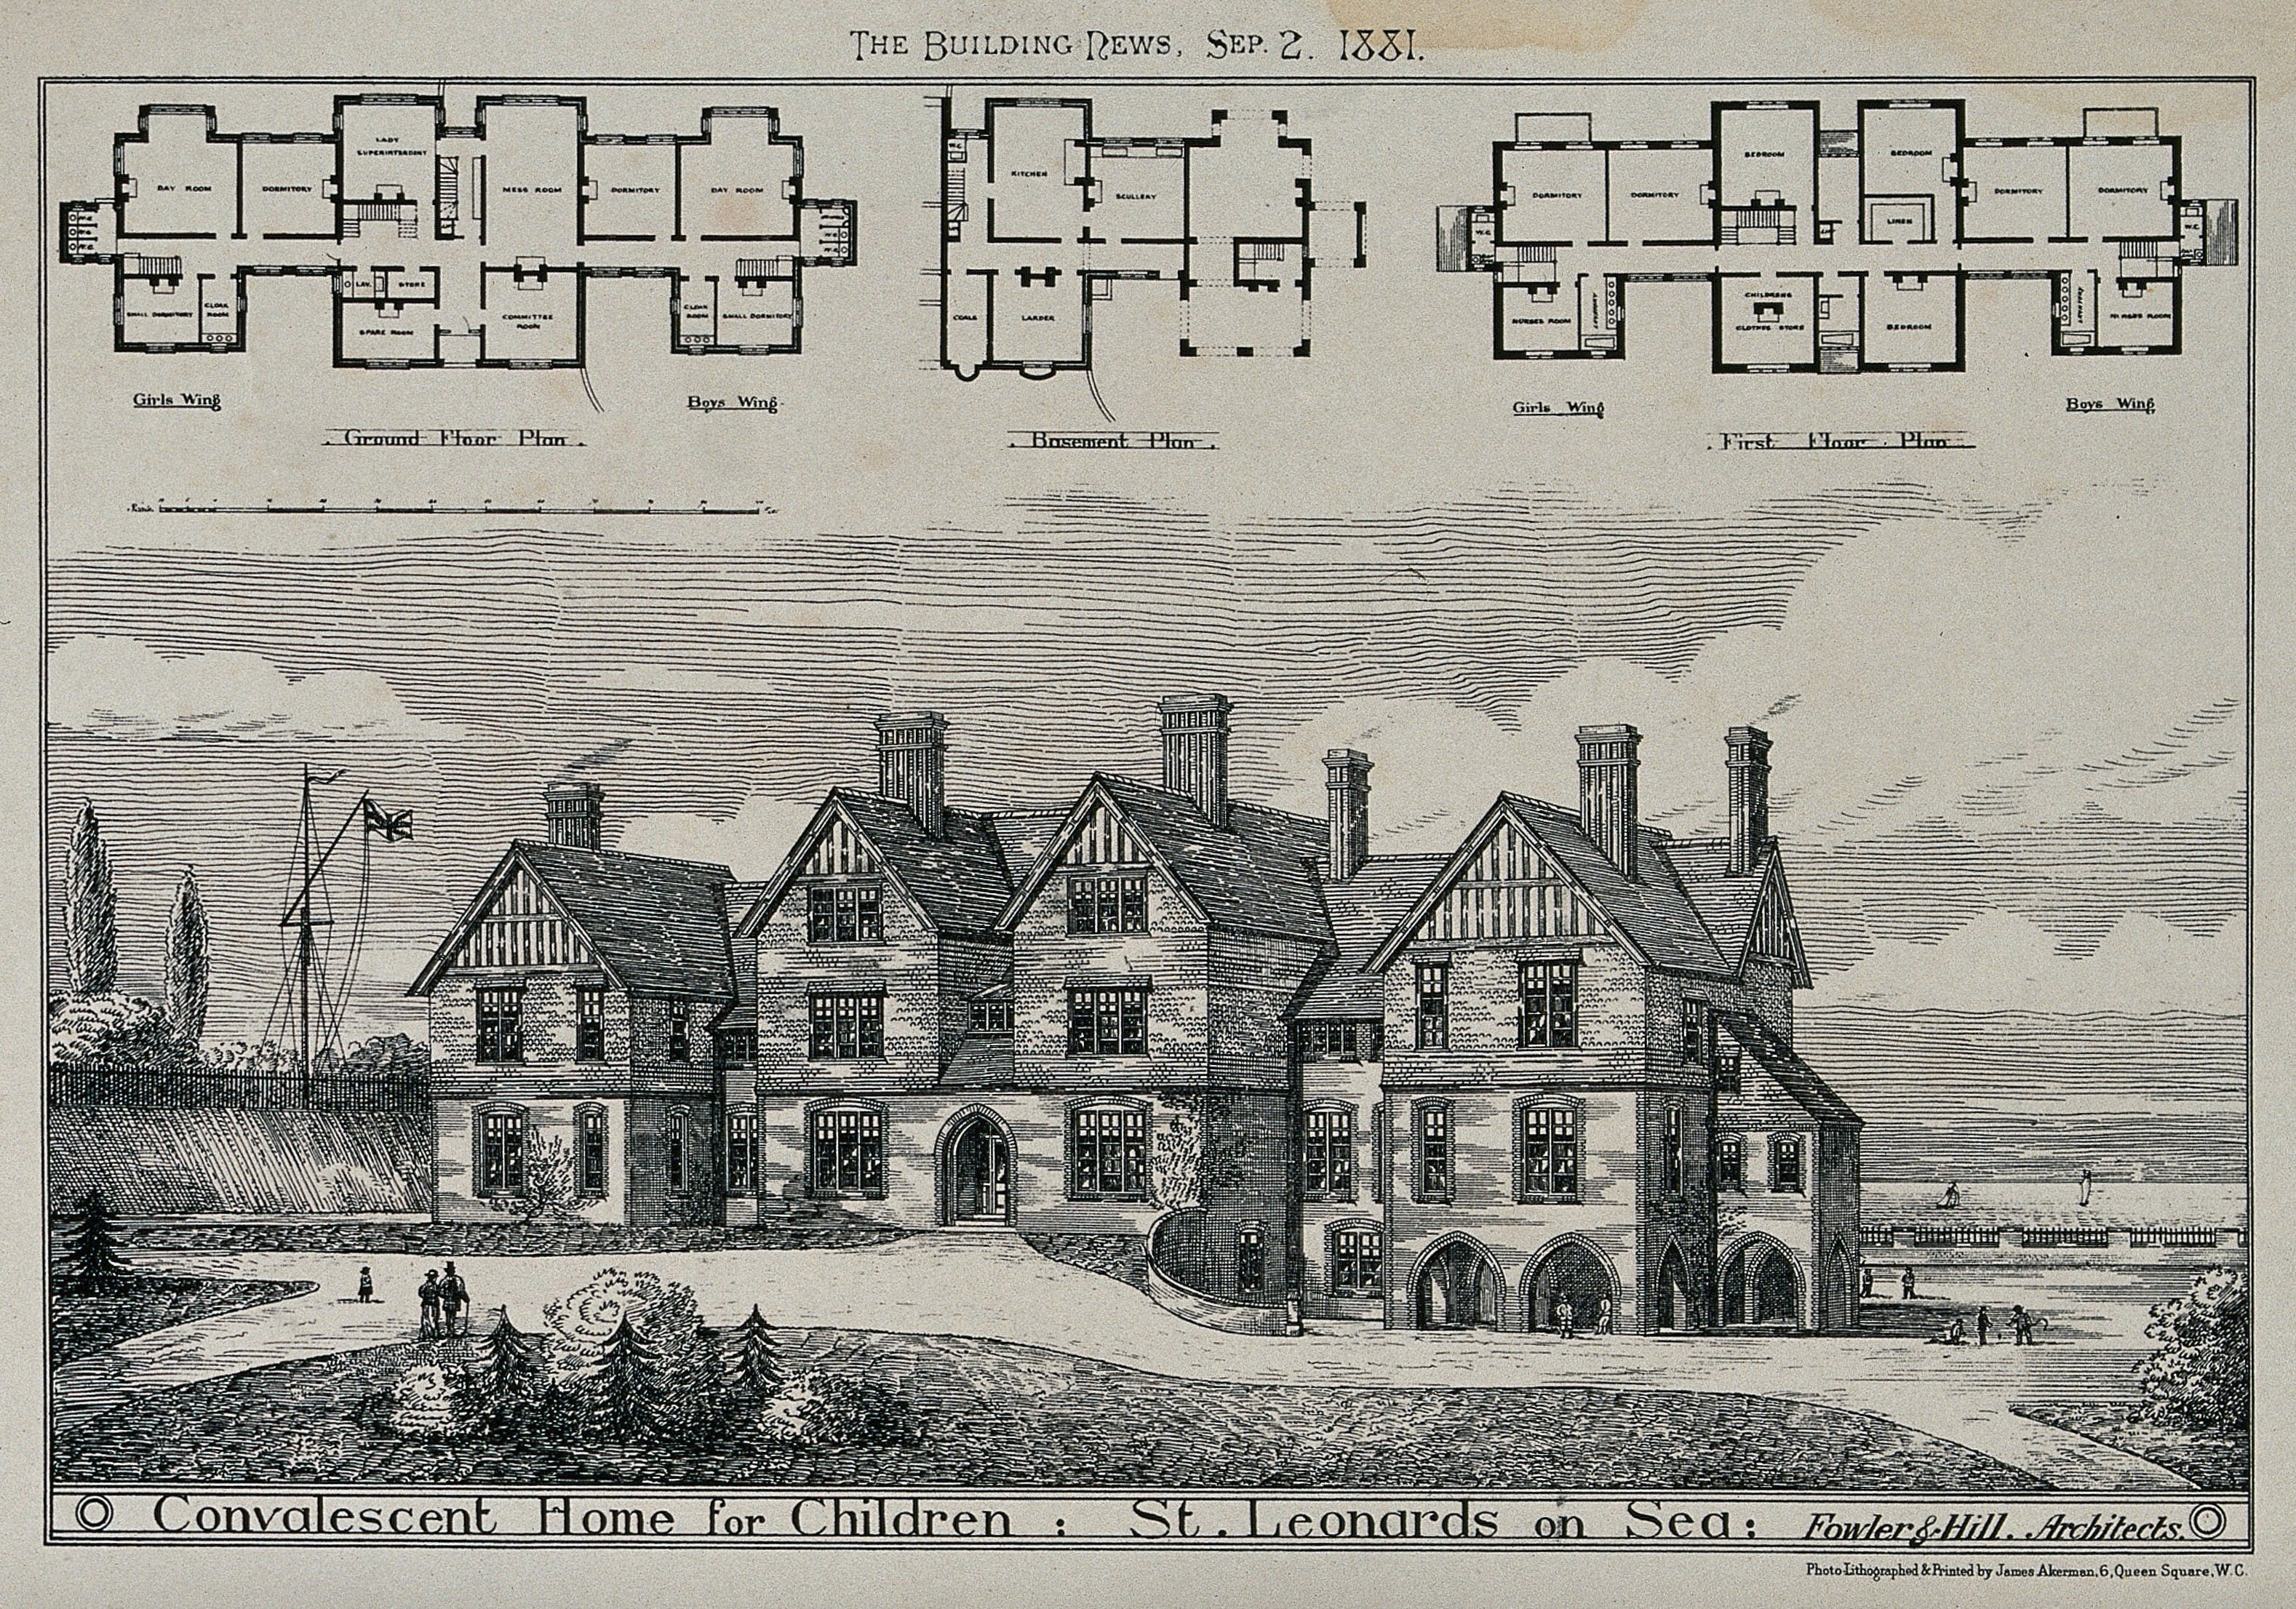 Perspective view of the Convalescent Home for Children, St Leonards. Floor plans are also included.